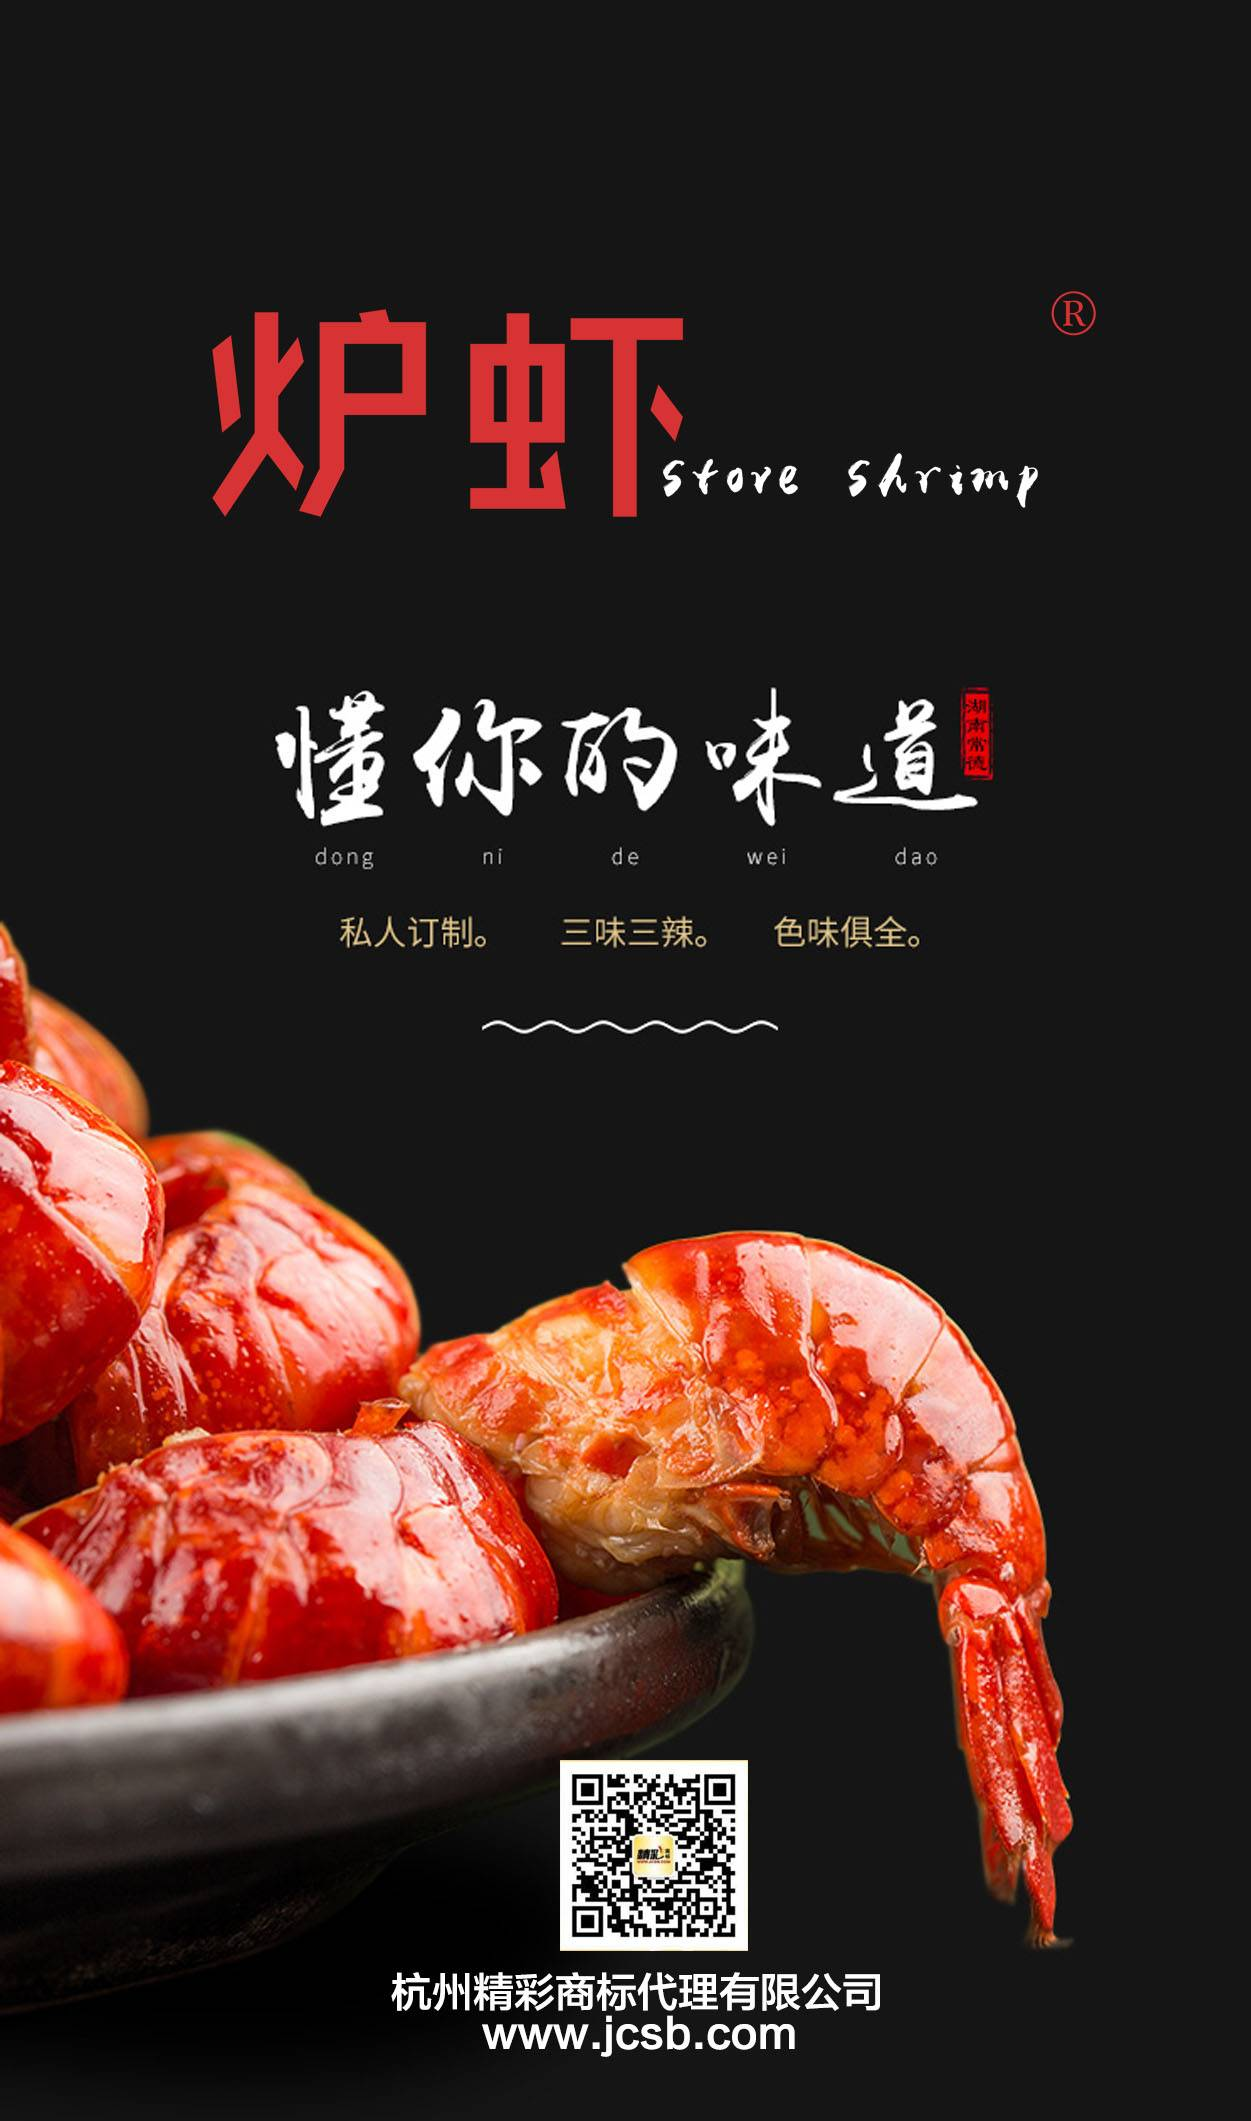 炉虾 STOVE SHRIMP